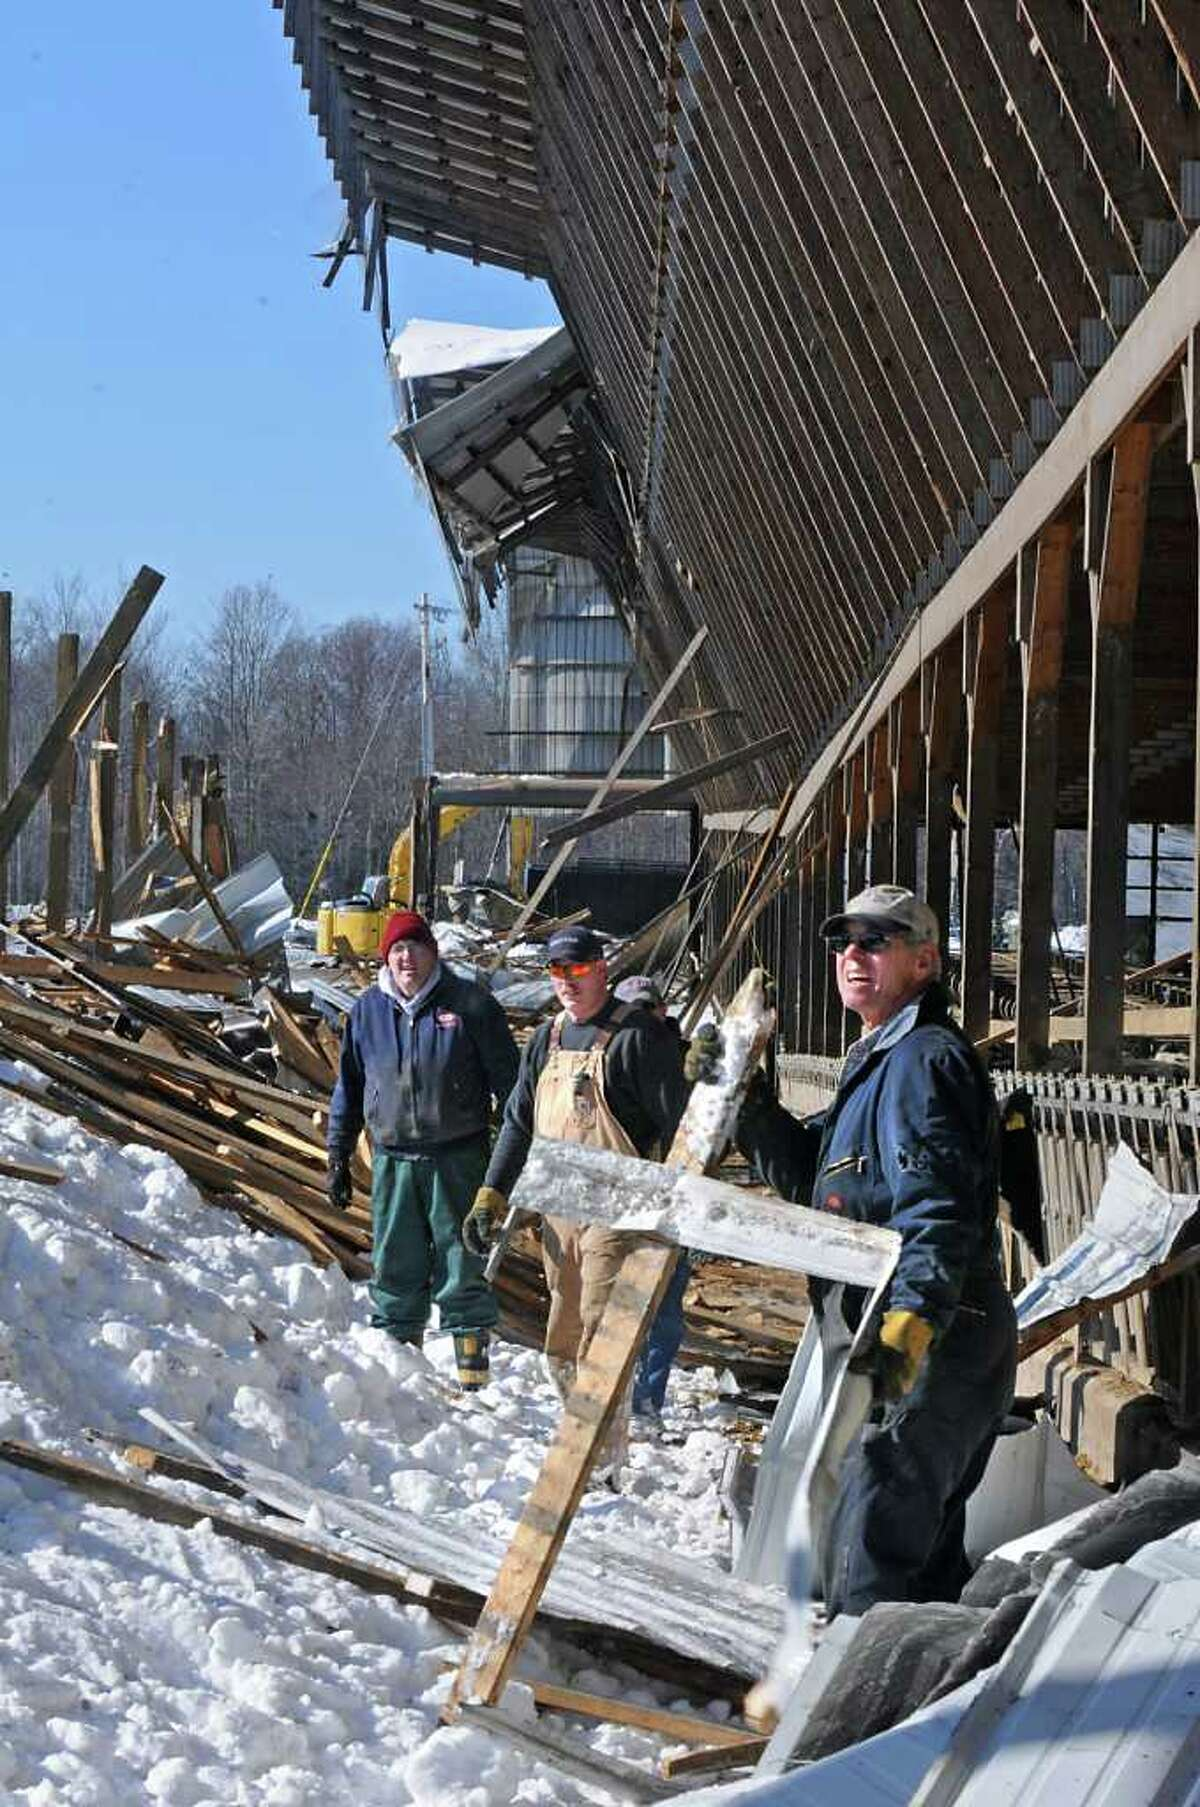 A farmhand moves a piece of debris while cleaning up after a barn roof collapsed in Northumberland killing or injuring more than 70 cows. (Lori Van Buren / Times Union)